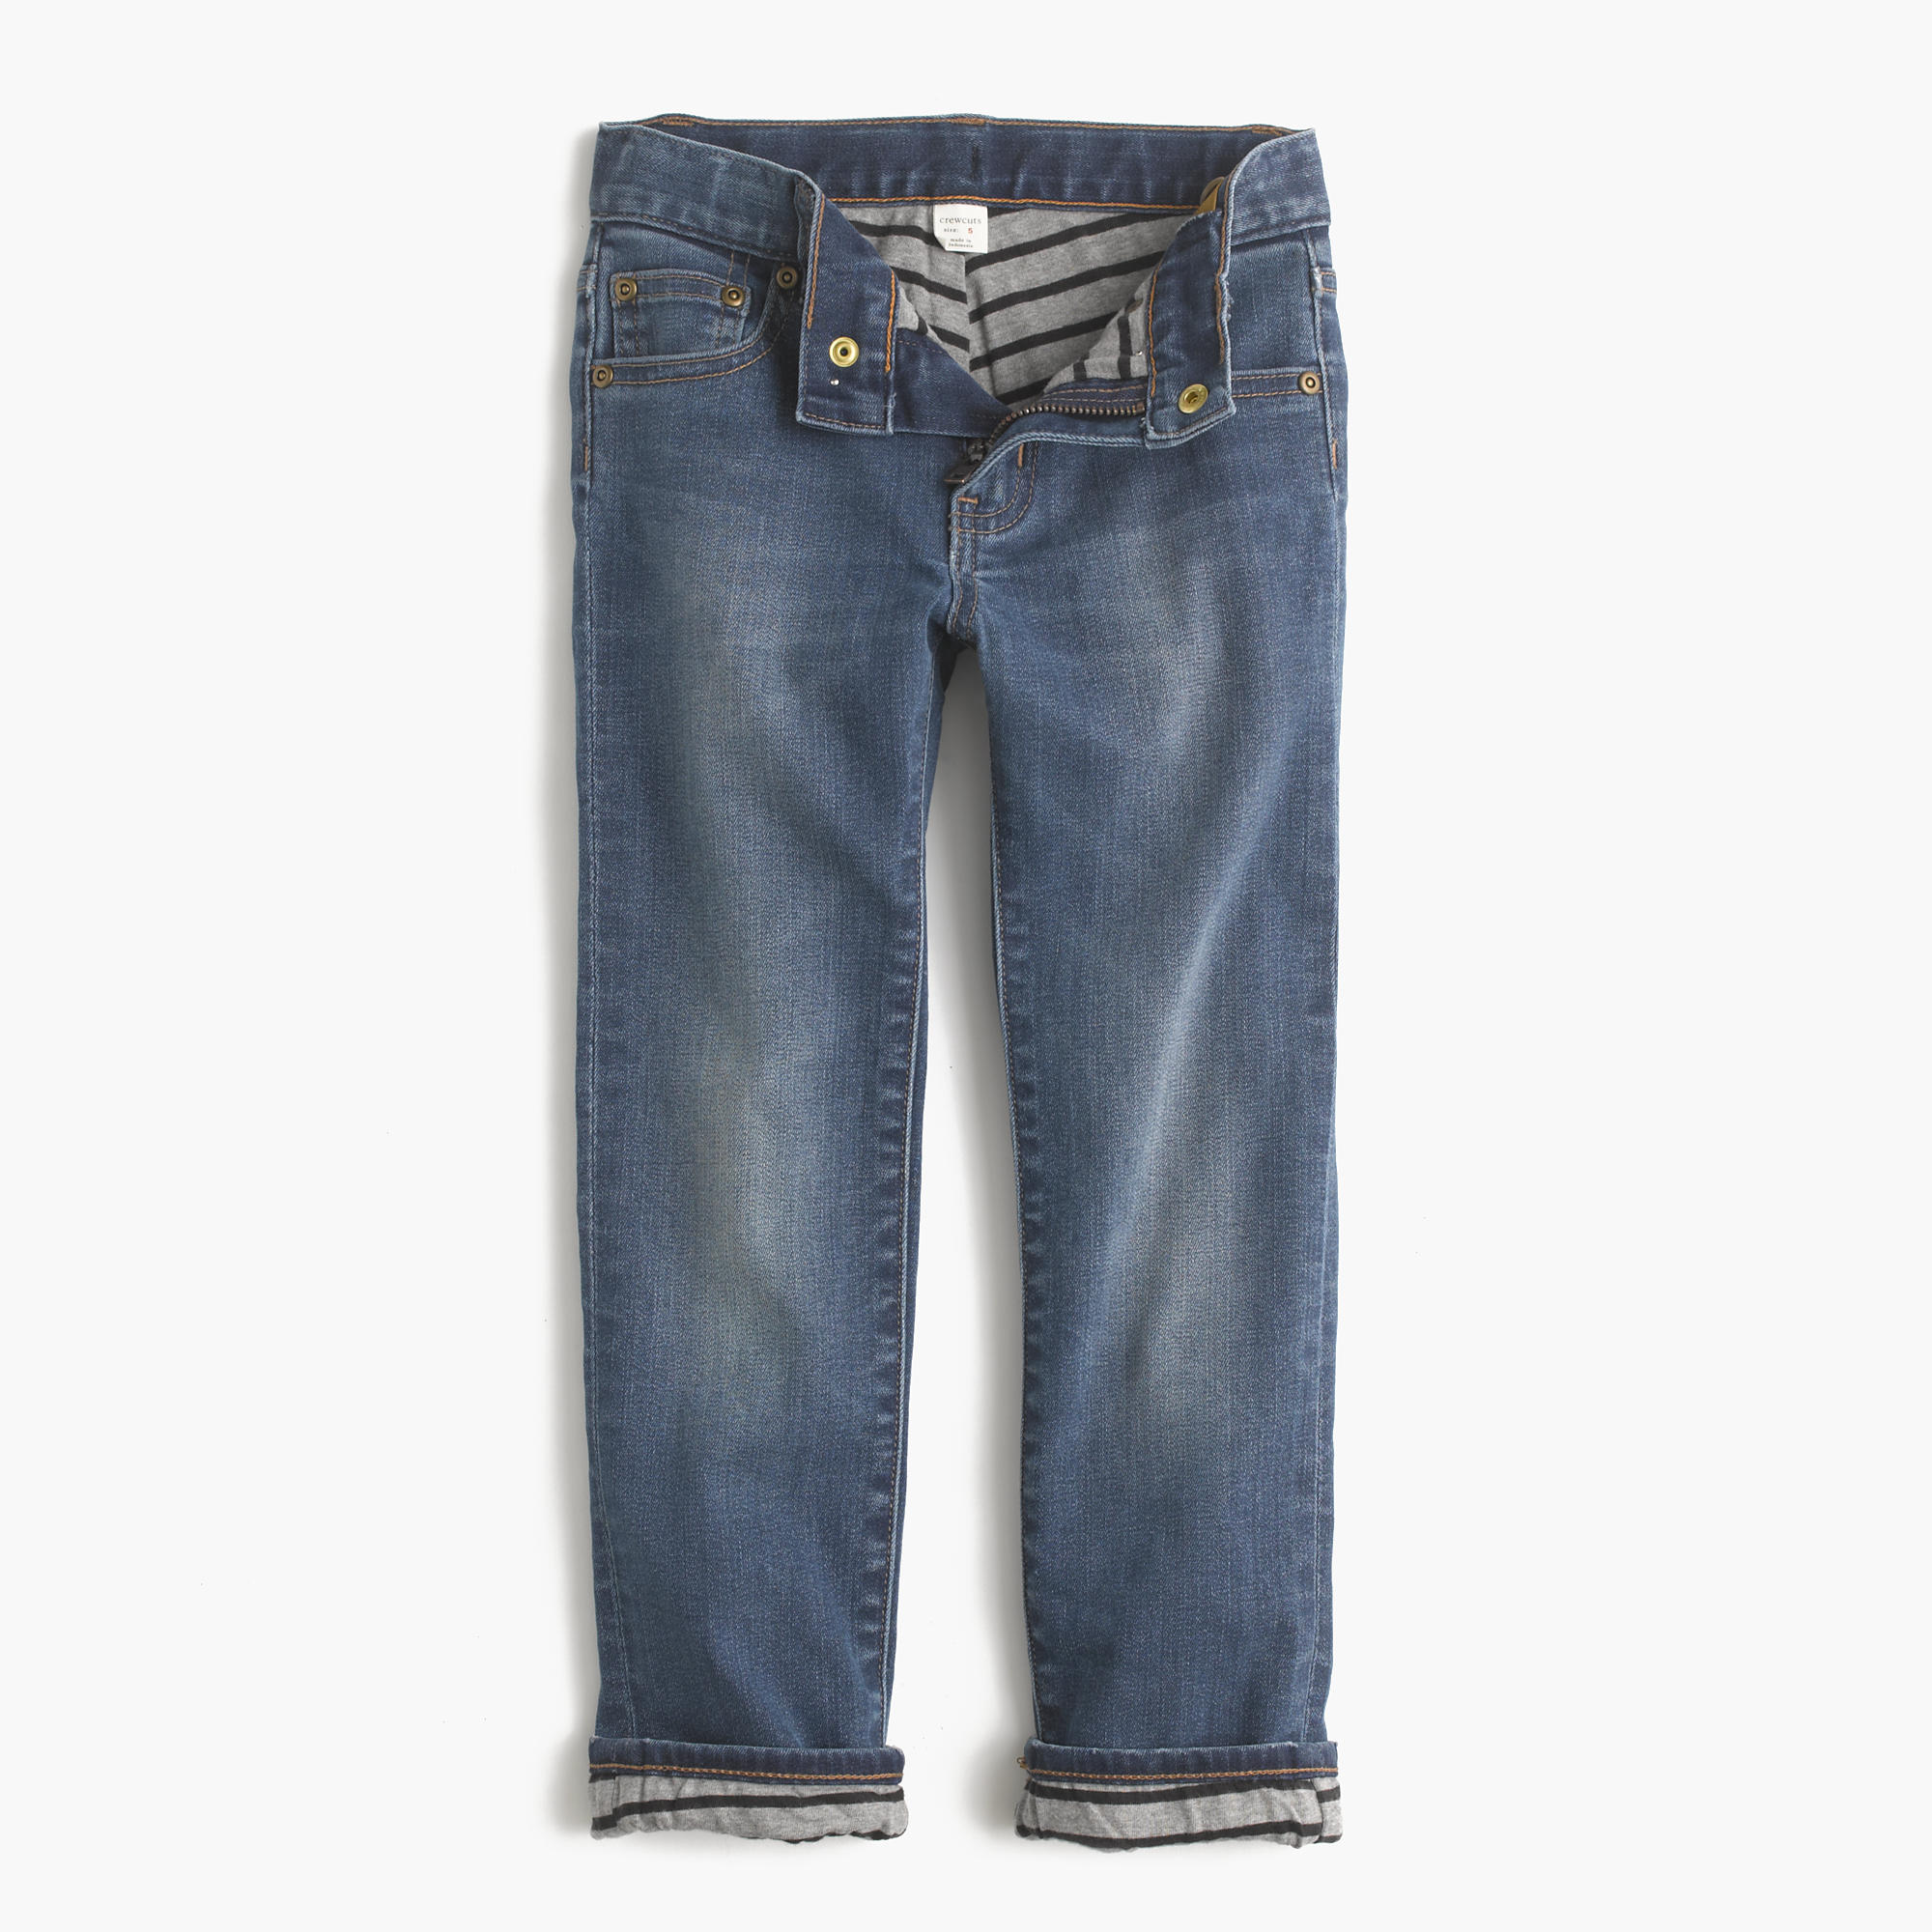 Boys Lined Jeans with Regular Fit Stretch Straight Leg and 5 Pockets $ 20 99 Prime. out of 5 stars 3. The Children's Place. Baby Boys' Pull On Cargo Pants, from $ 7 95 Prime. out of 5 stars Pulla Bulla. Little Boys' Sweatpants Fleece Pants $ 8 80 Prime. out of 5 stars Gymboree. Boys' Lined Gymster Pant.